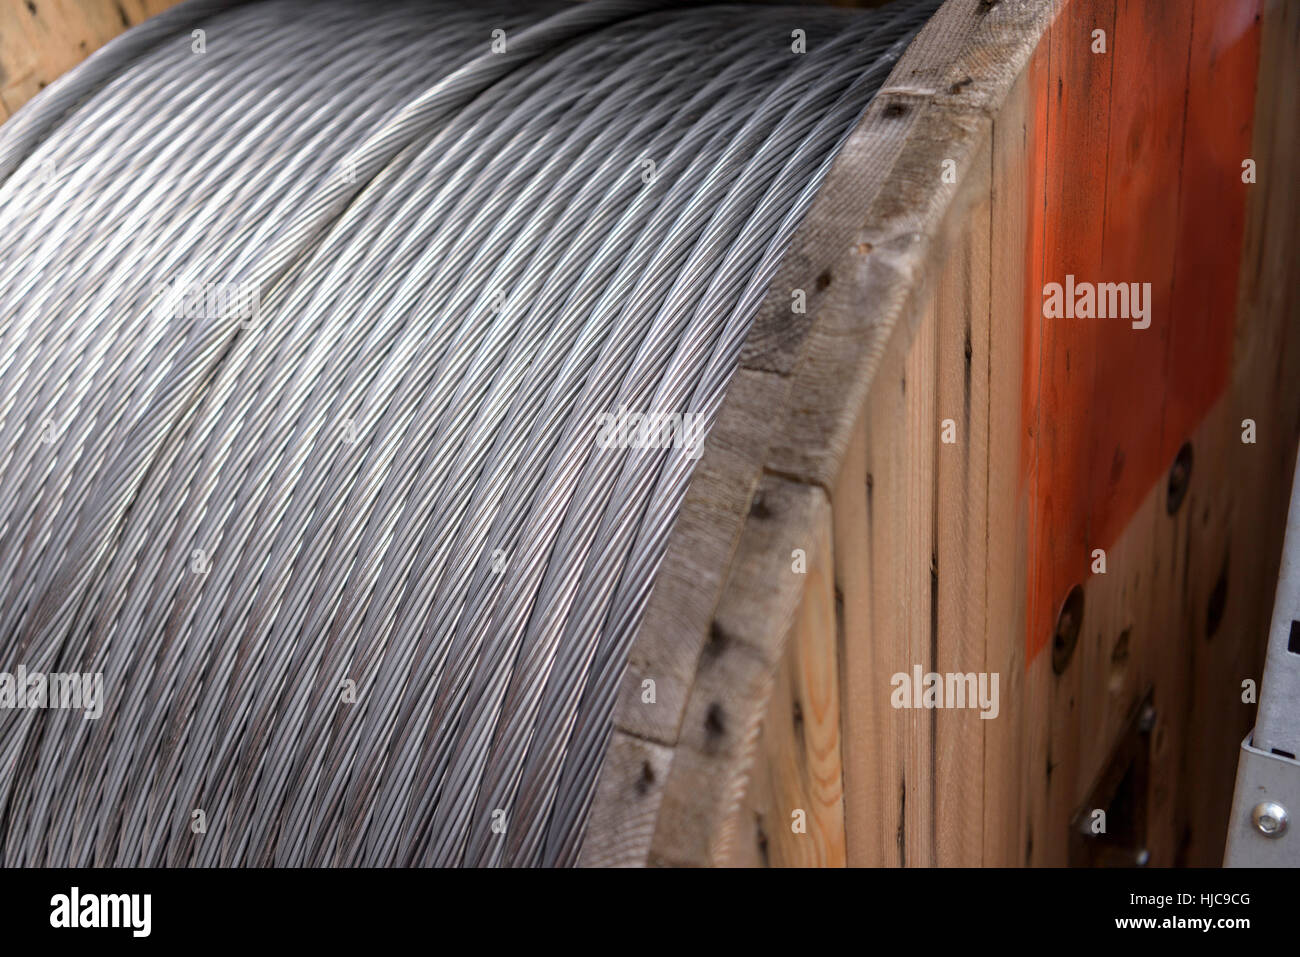 Electrical cable reel at cable storage facility, close up - Stock Image